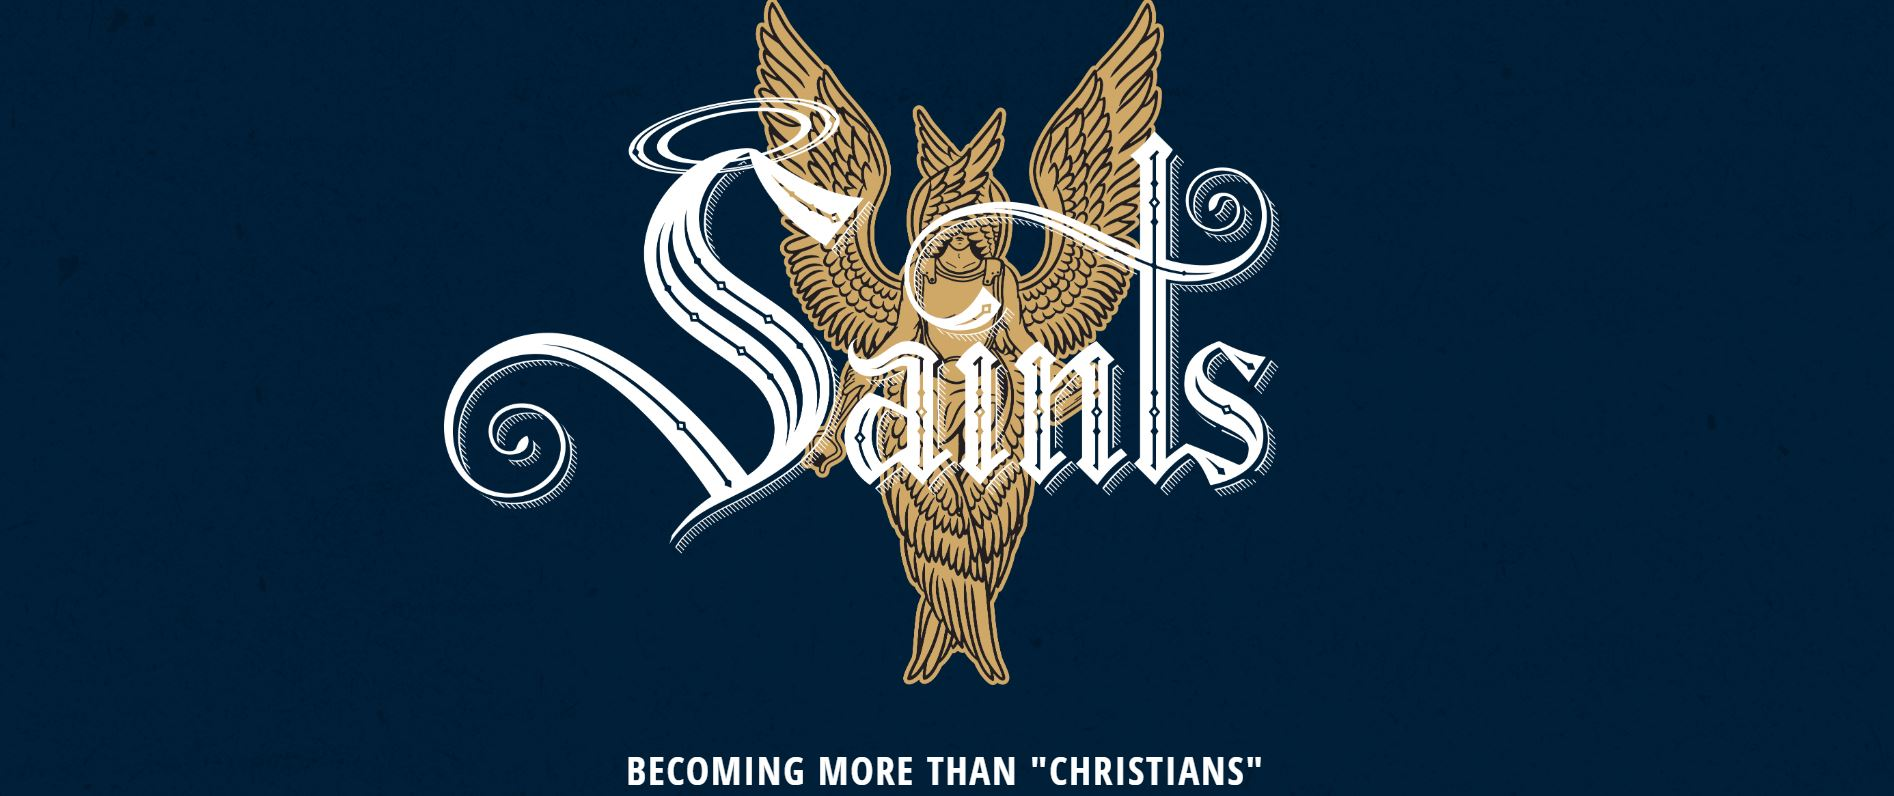 In New Book, Addison Bevere Shares the 'Life-Changing' Reason Why Every Christian Should Begin Identifying as a Saint